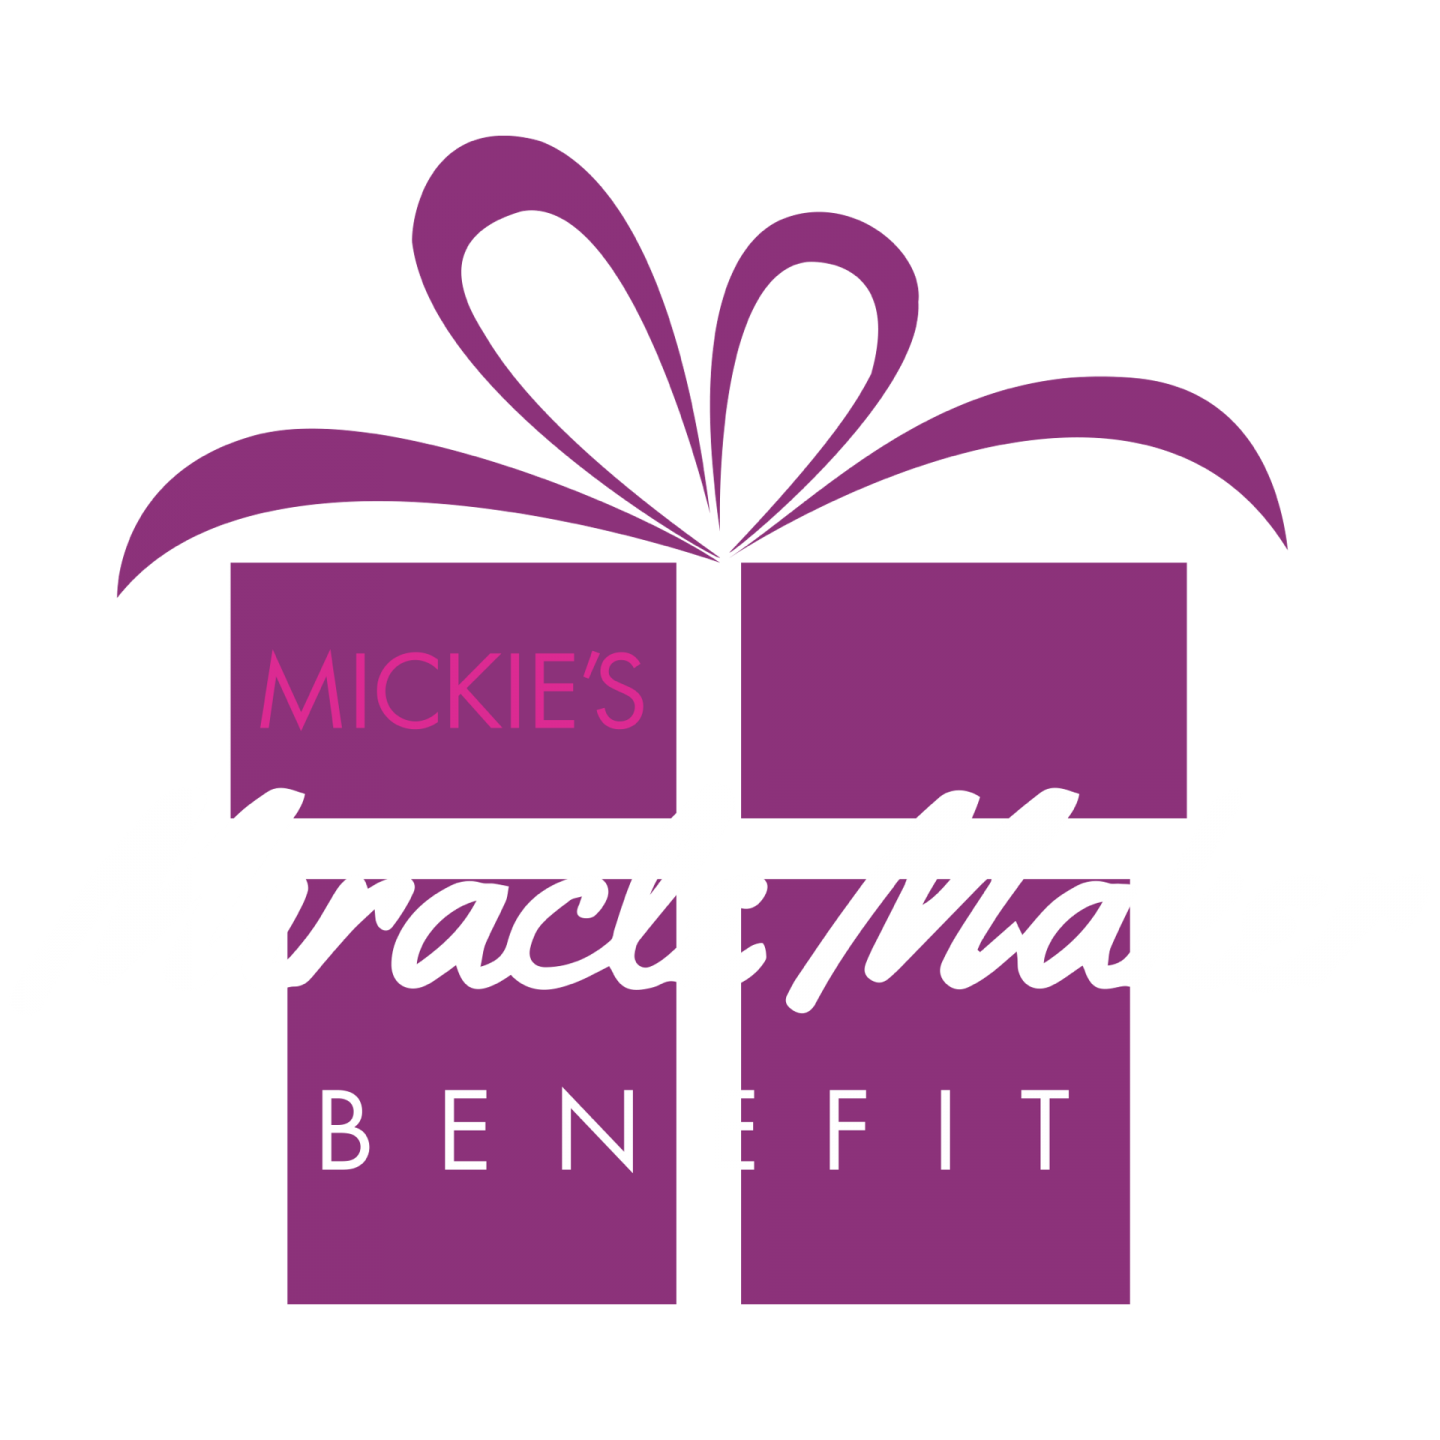 Mickie's Miracle Maker Benefit